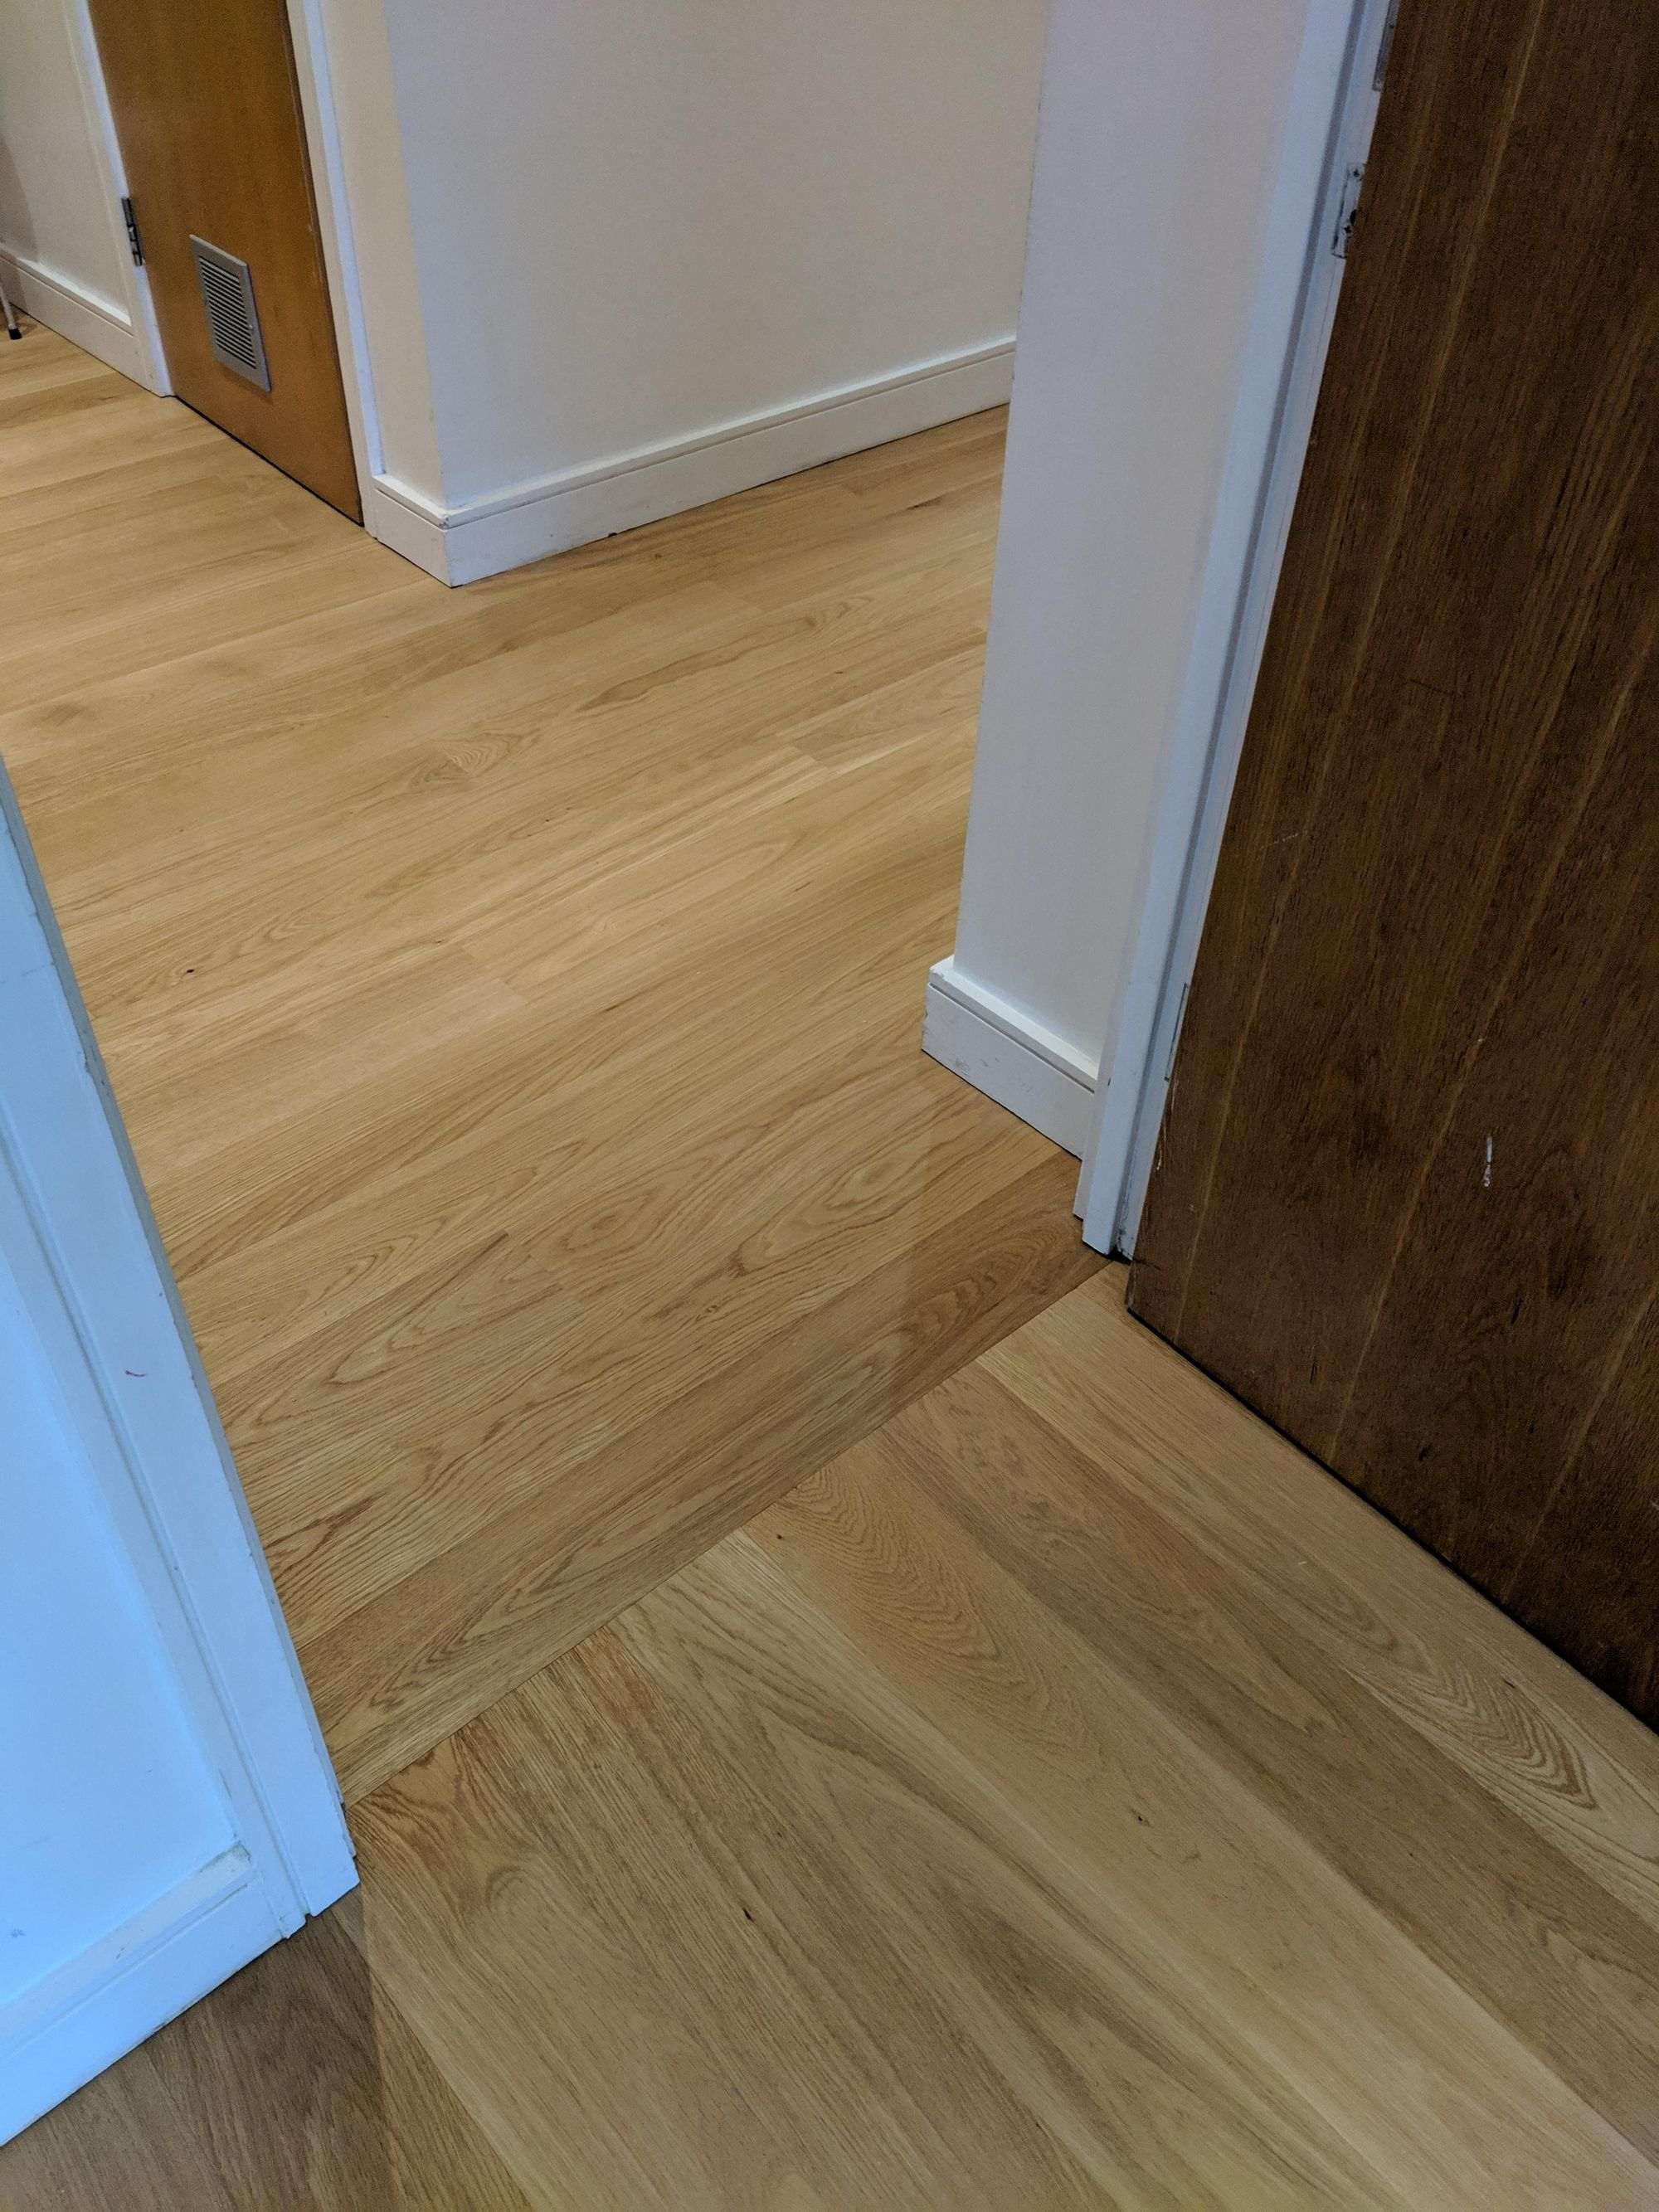 Change In Direction Of Wood Flooring Boards Hardwood Floors Flooring Stairs Cladding